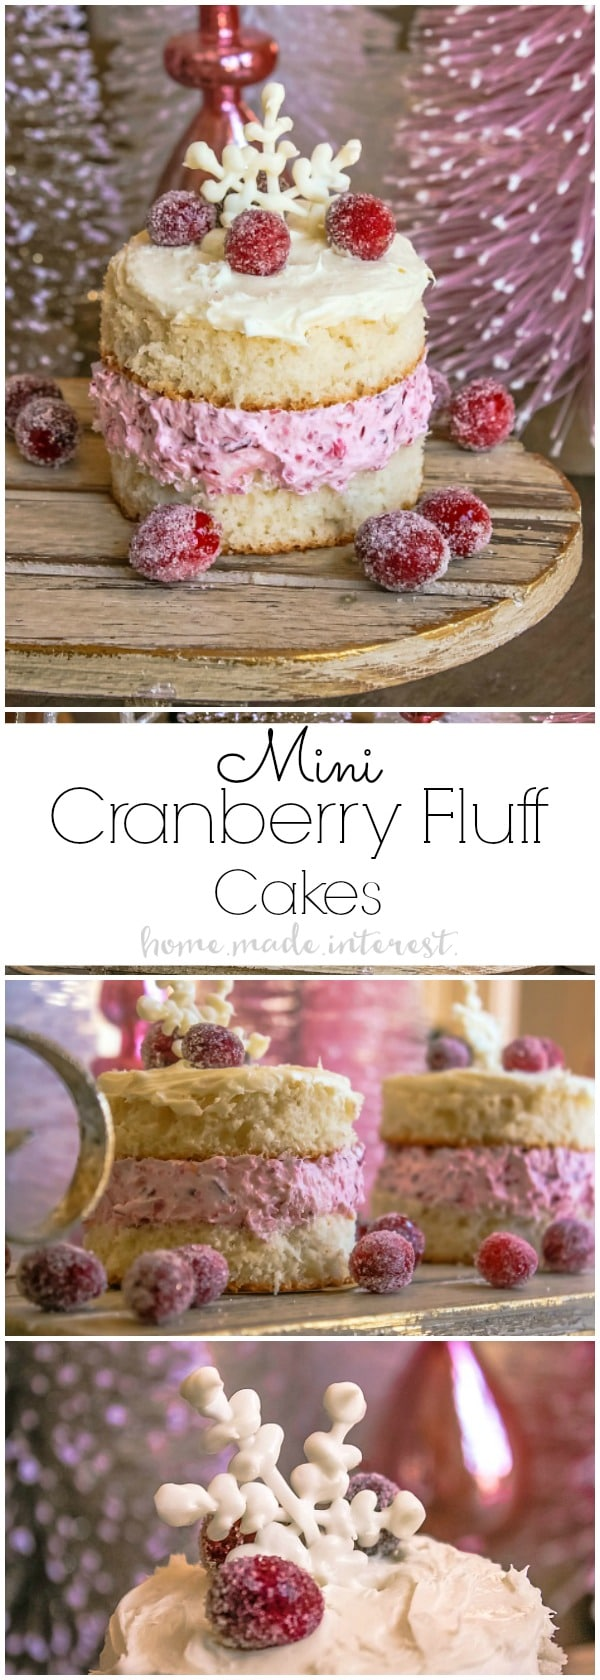 These pretty Mini Cranberry Fluff Cakes are perfect for Thanksgiving dessert or Christmas dessert. The cranberry fluff recipe is one of my favorites and it is even better sandwiched between two slices of cake and topped with white frosting!